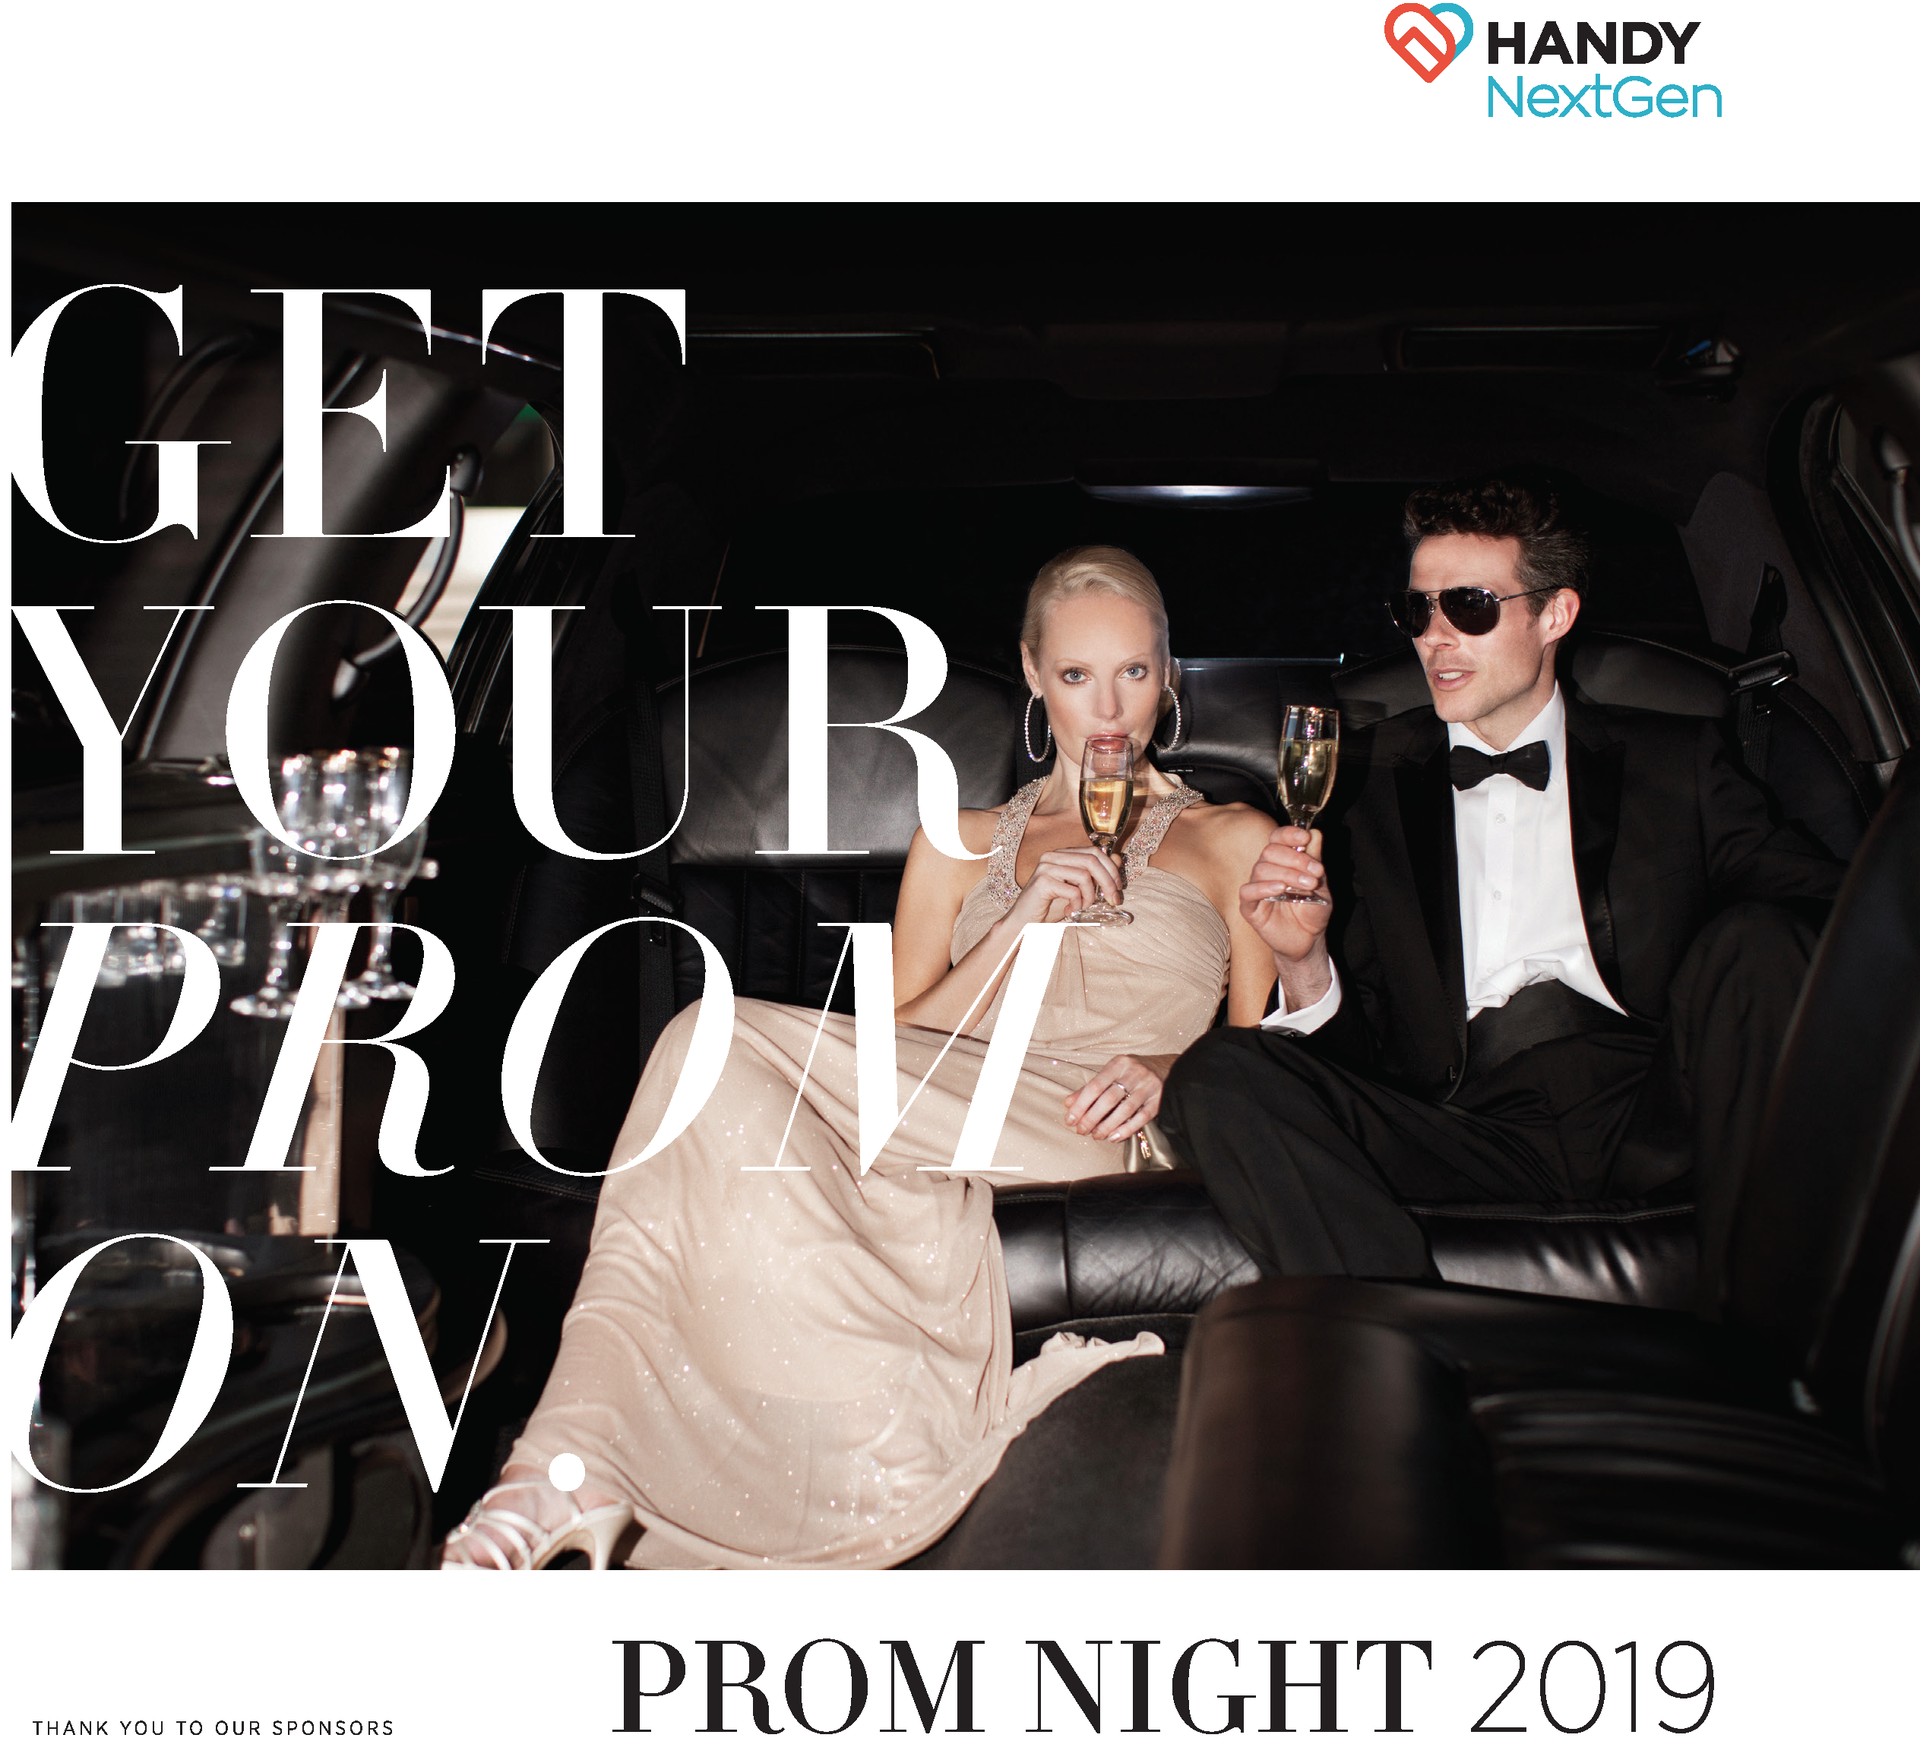 HANDY NexGen Prom Night